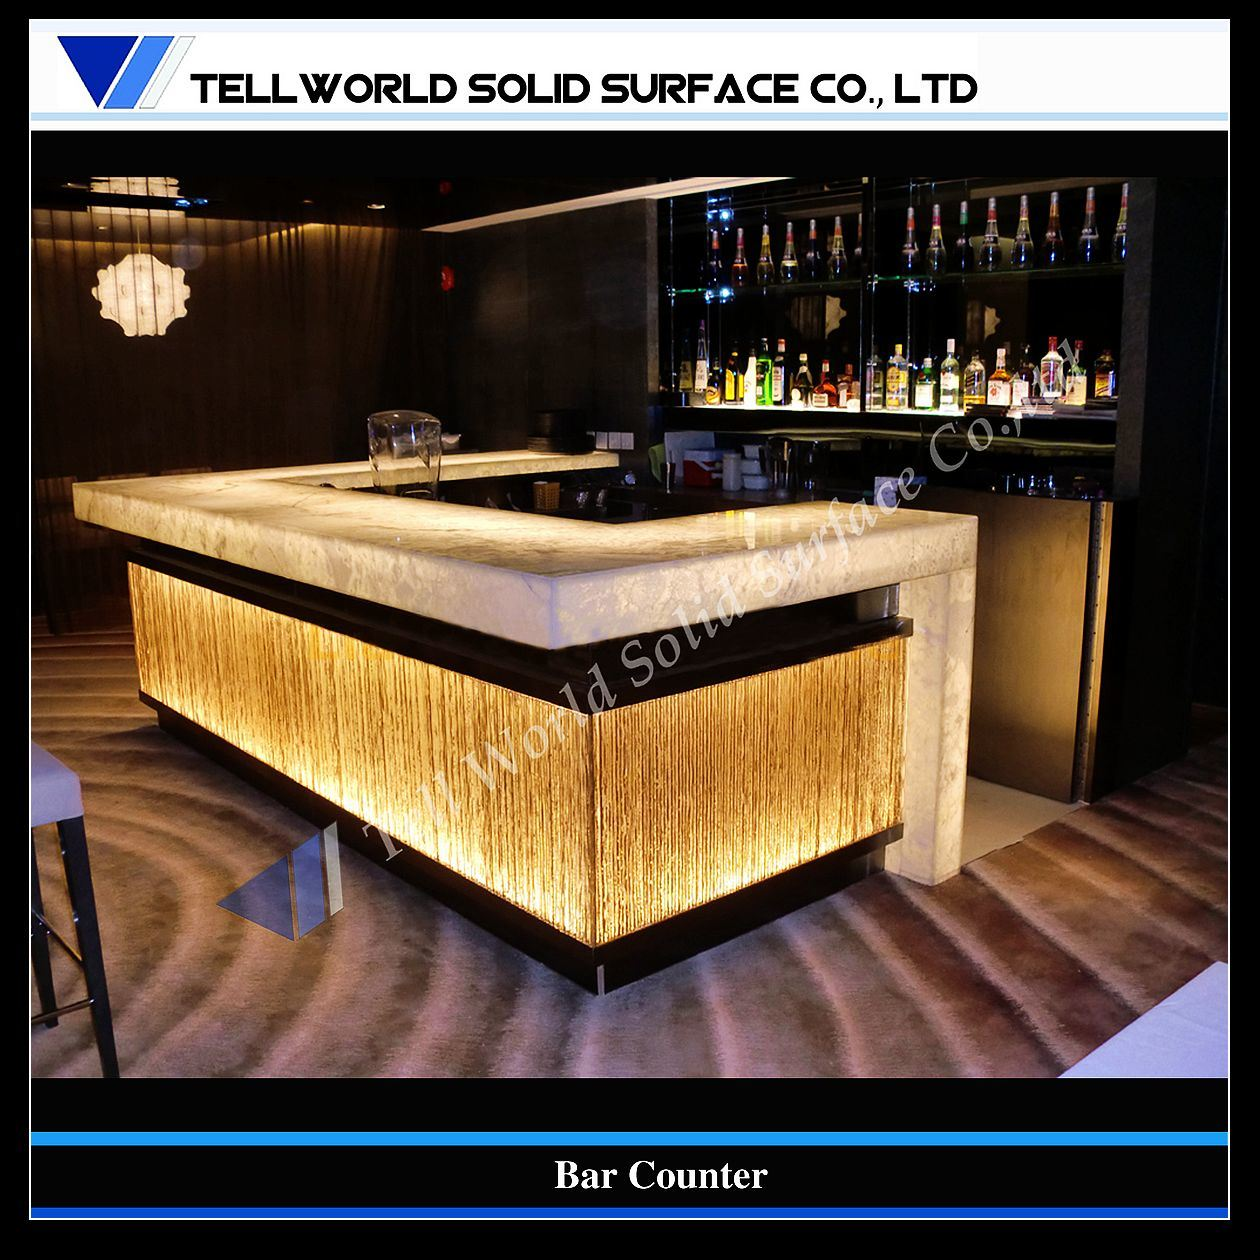 China artificial stone solid surface bar counter supplier tell world solid surface co ltd - Home bar counter design photo ...